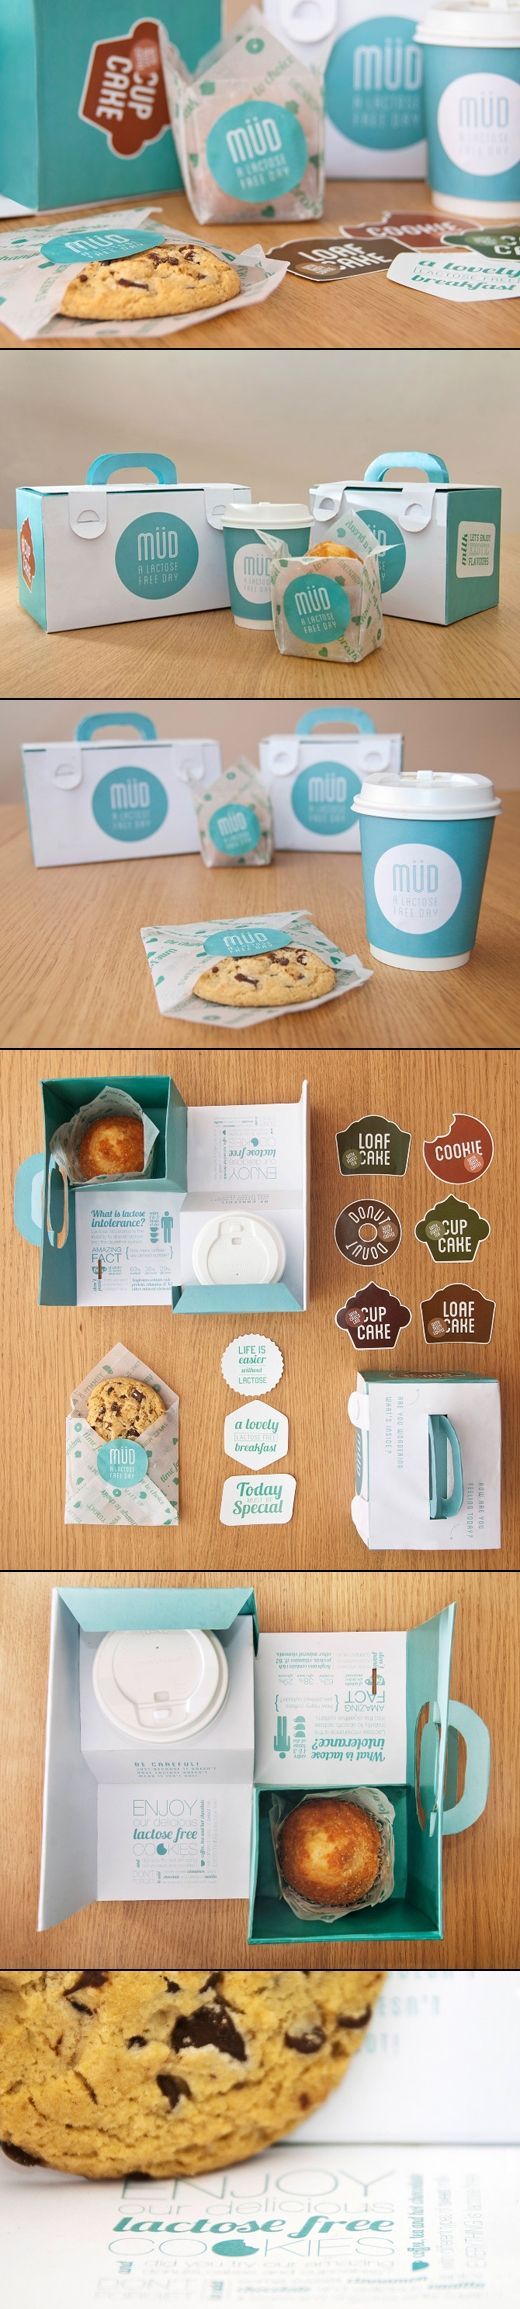 Take away packaging for a lactose intolerance friendly food brand designed by Beatrice Menis Mara Rodrguez, both students of Elisava, Barcelona.